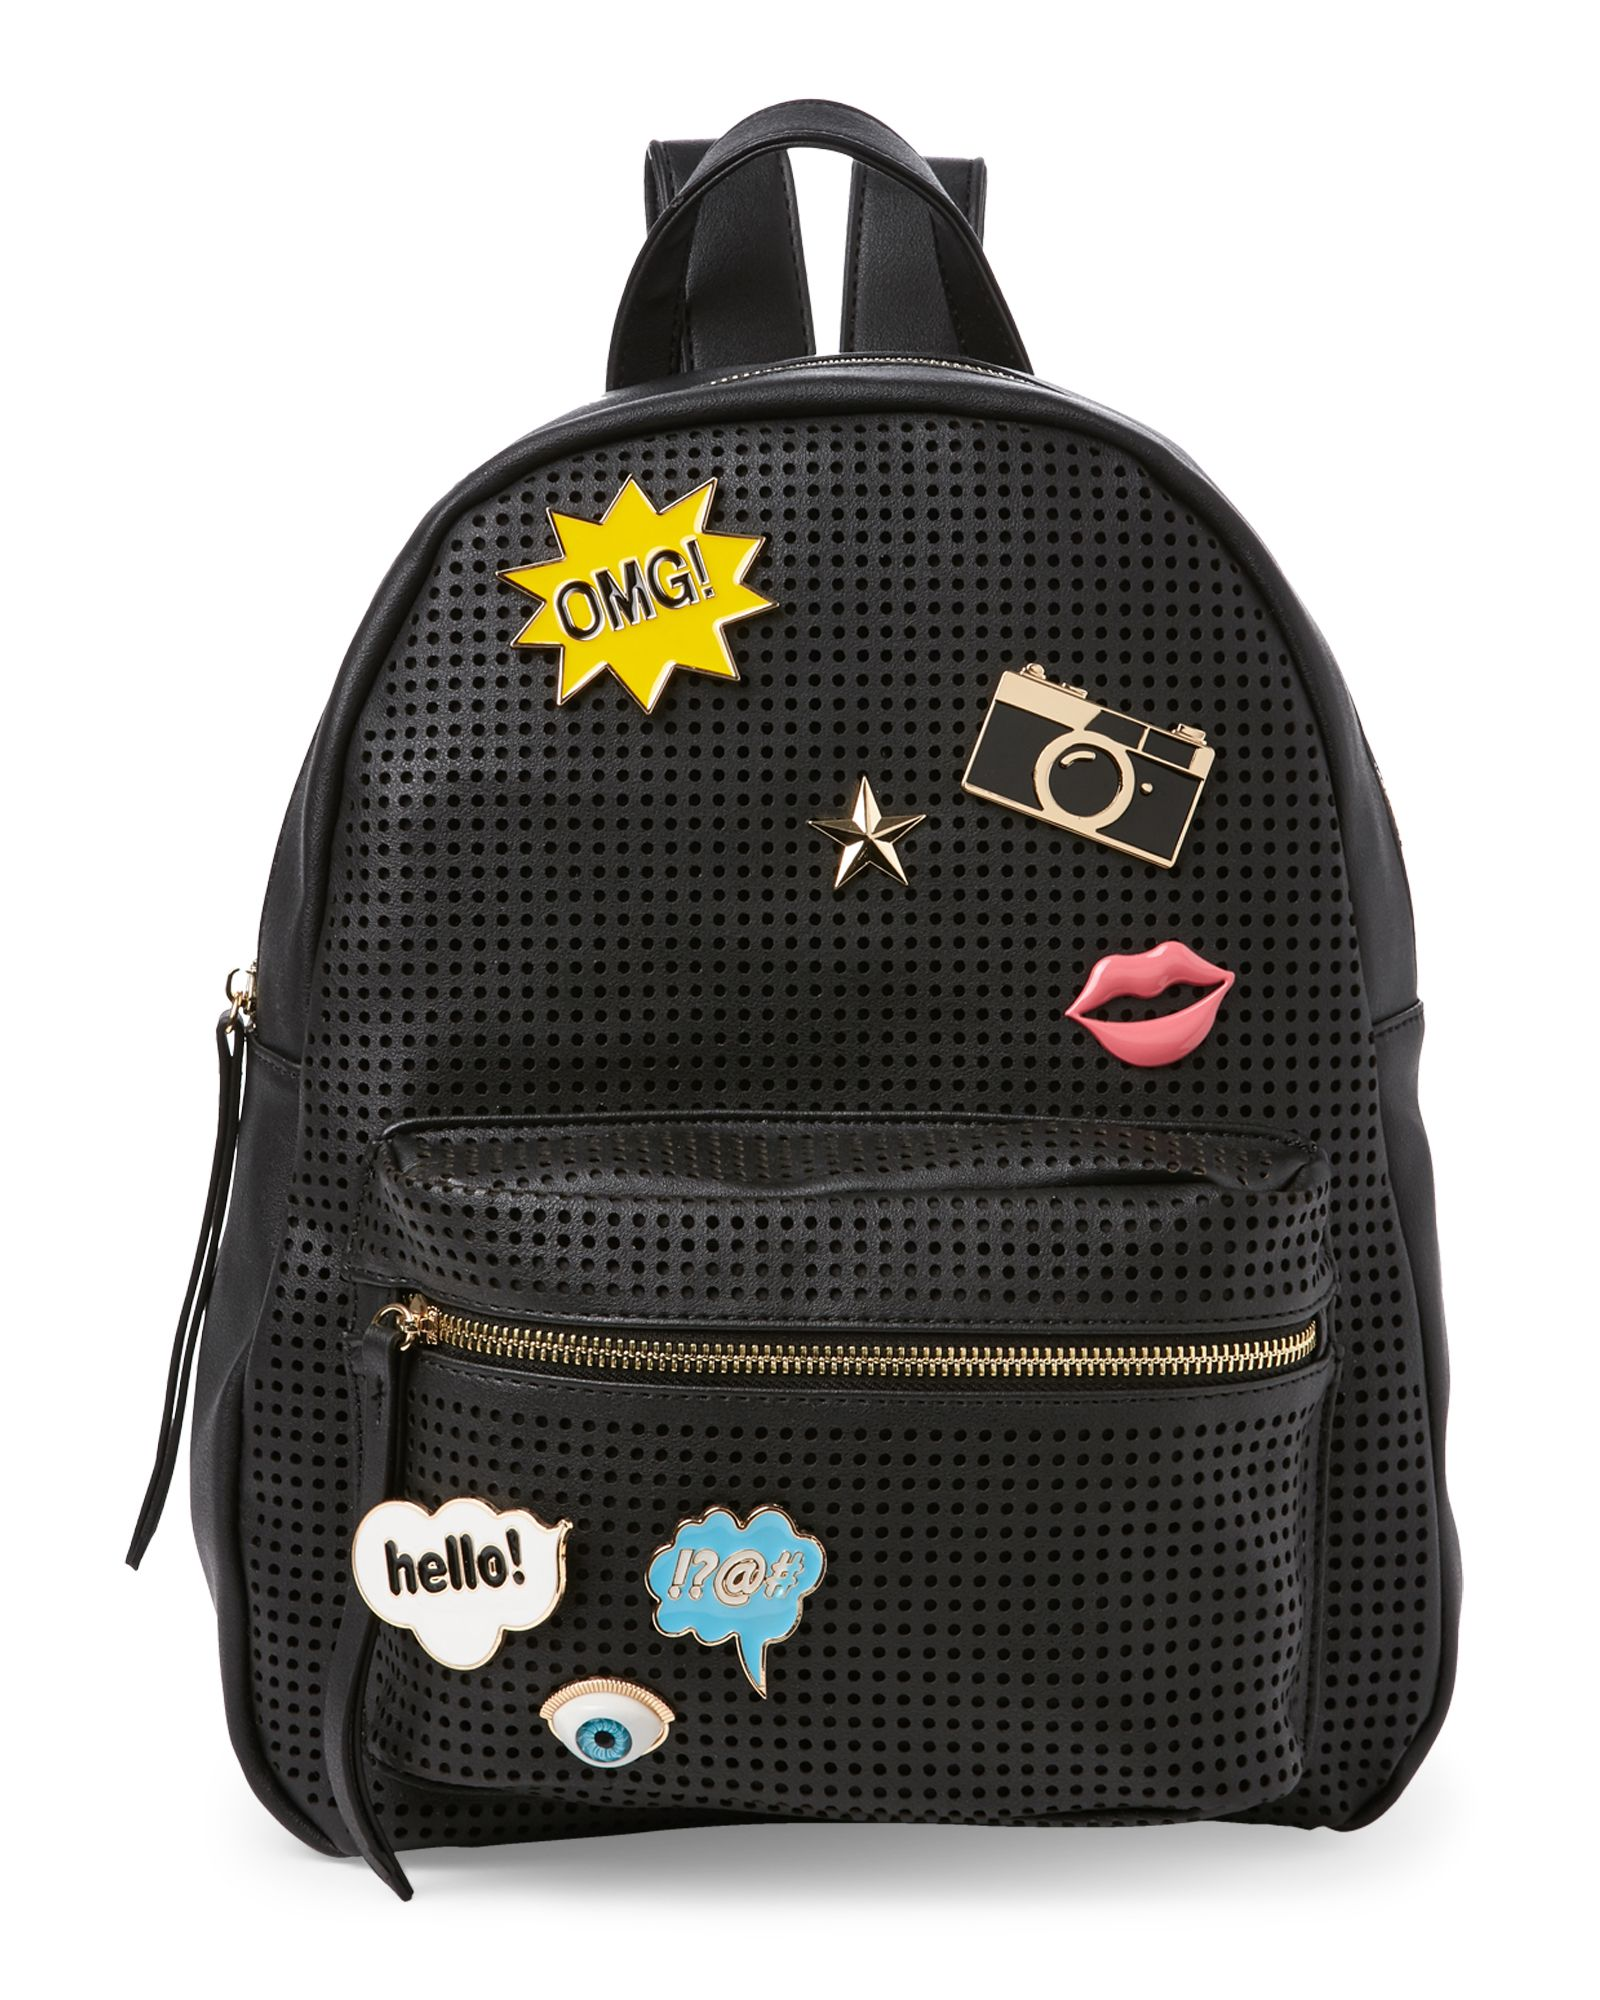 eae7b34ff05 Black Pin-Accented Perforated Backpack in 2019 | *Apparel ...